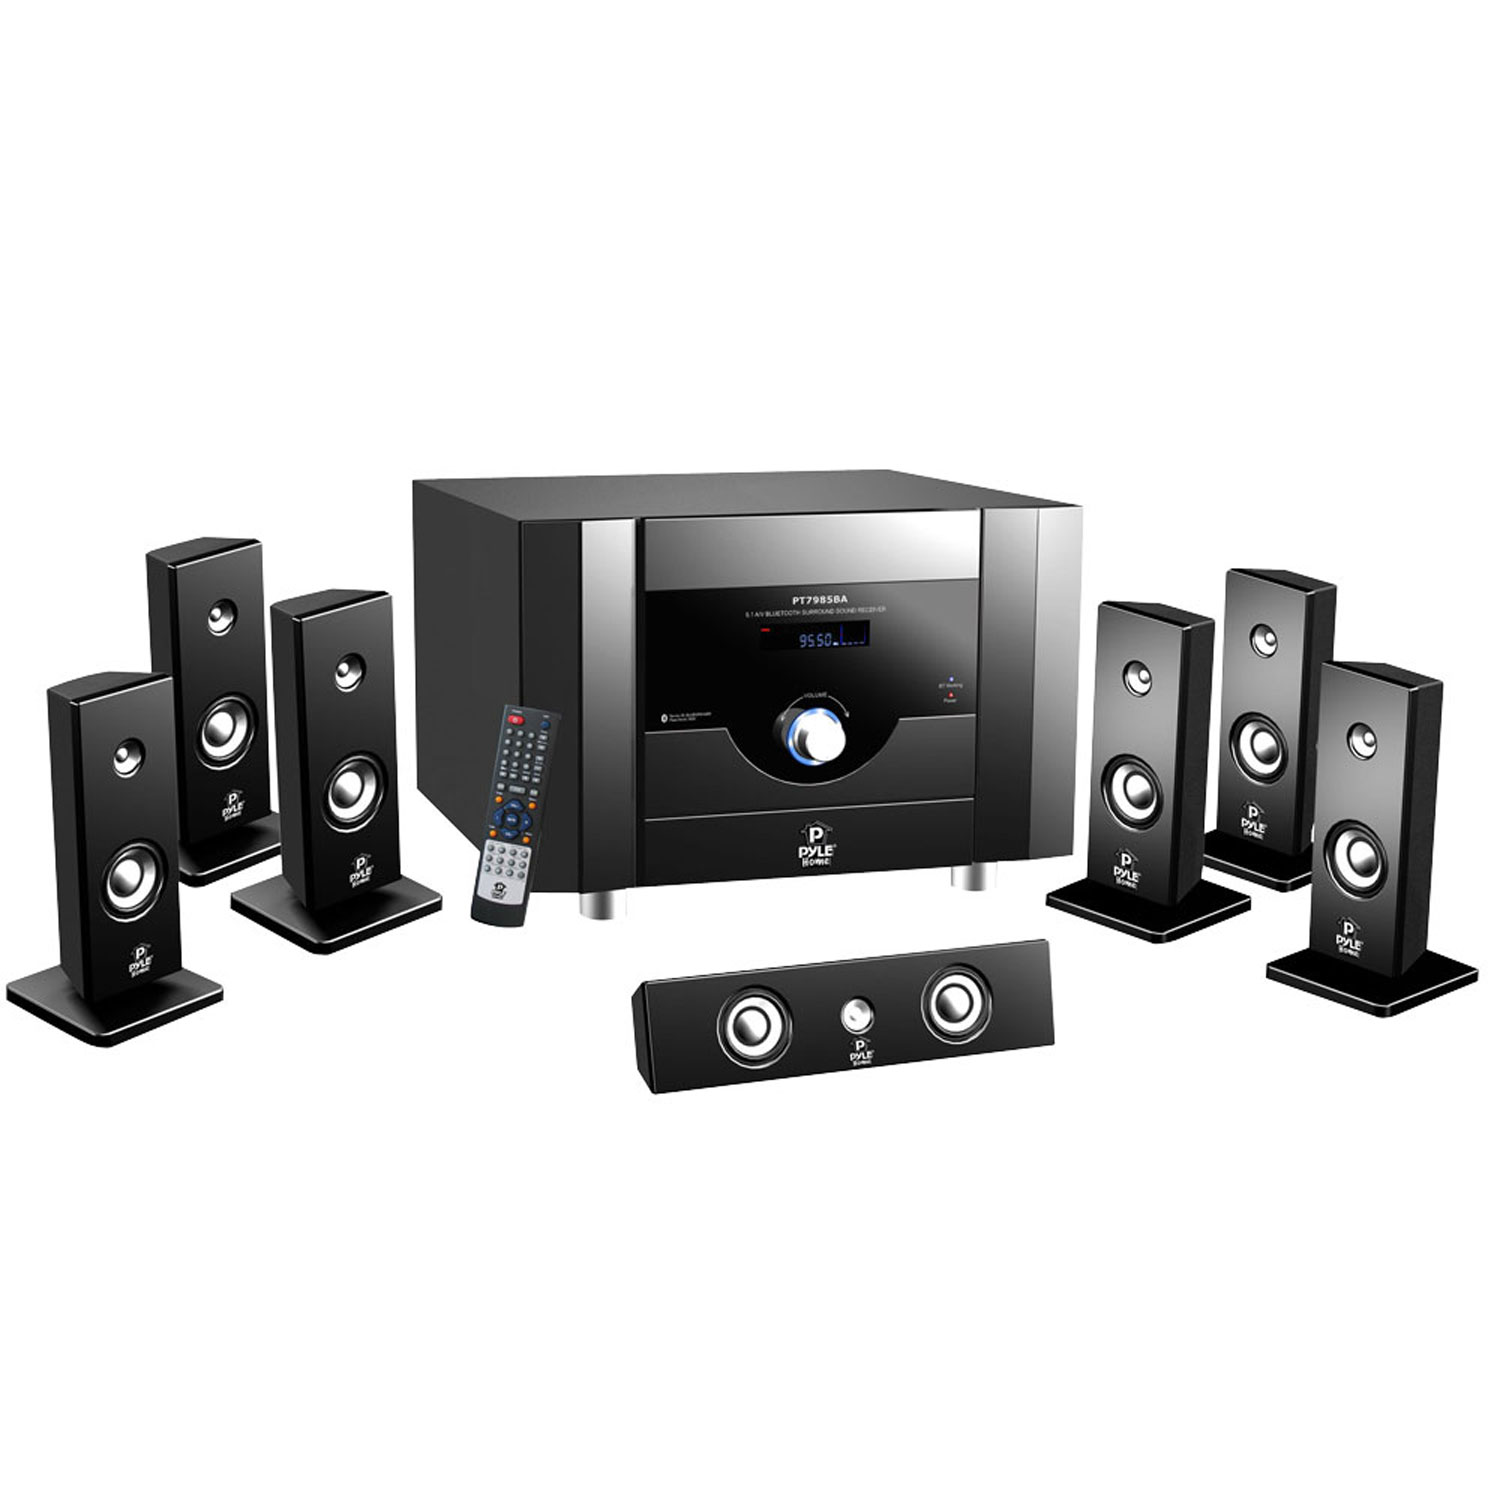 Pyle 7.1 Channel Home Theater System with Satellite Speakers, Center Channel, Subwoofer, BT, FM Tuner